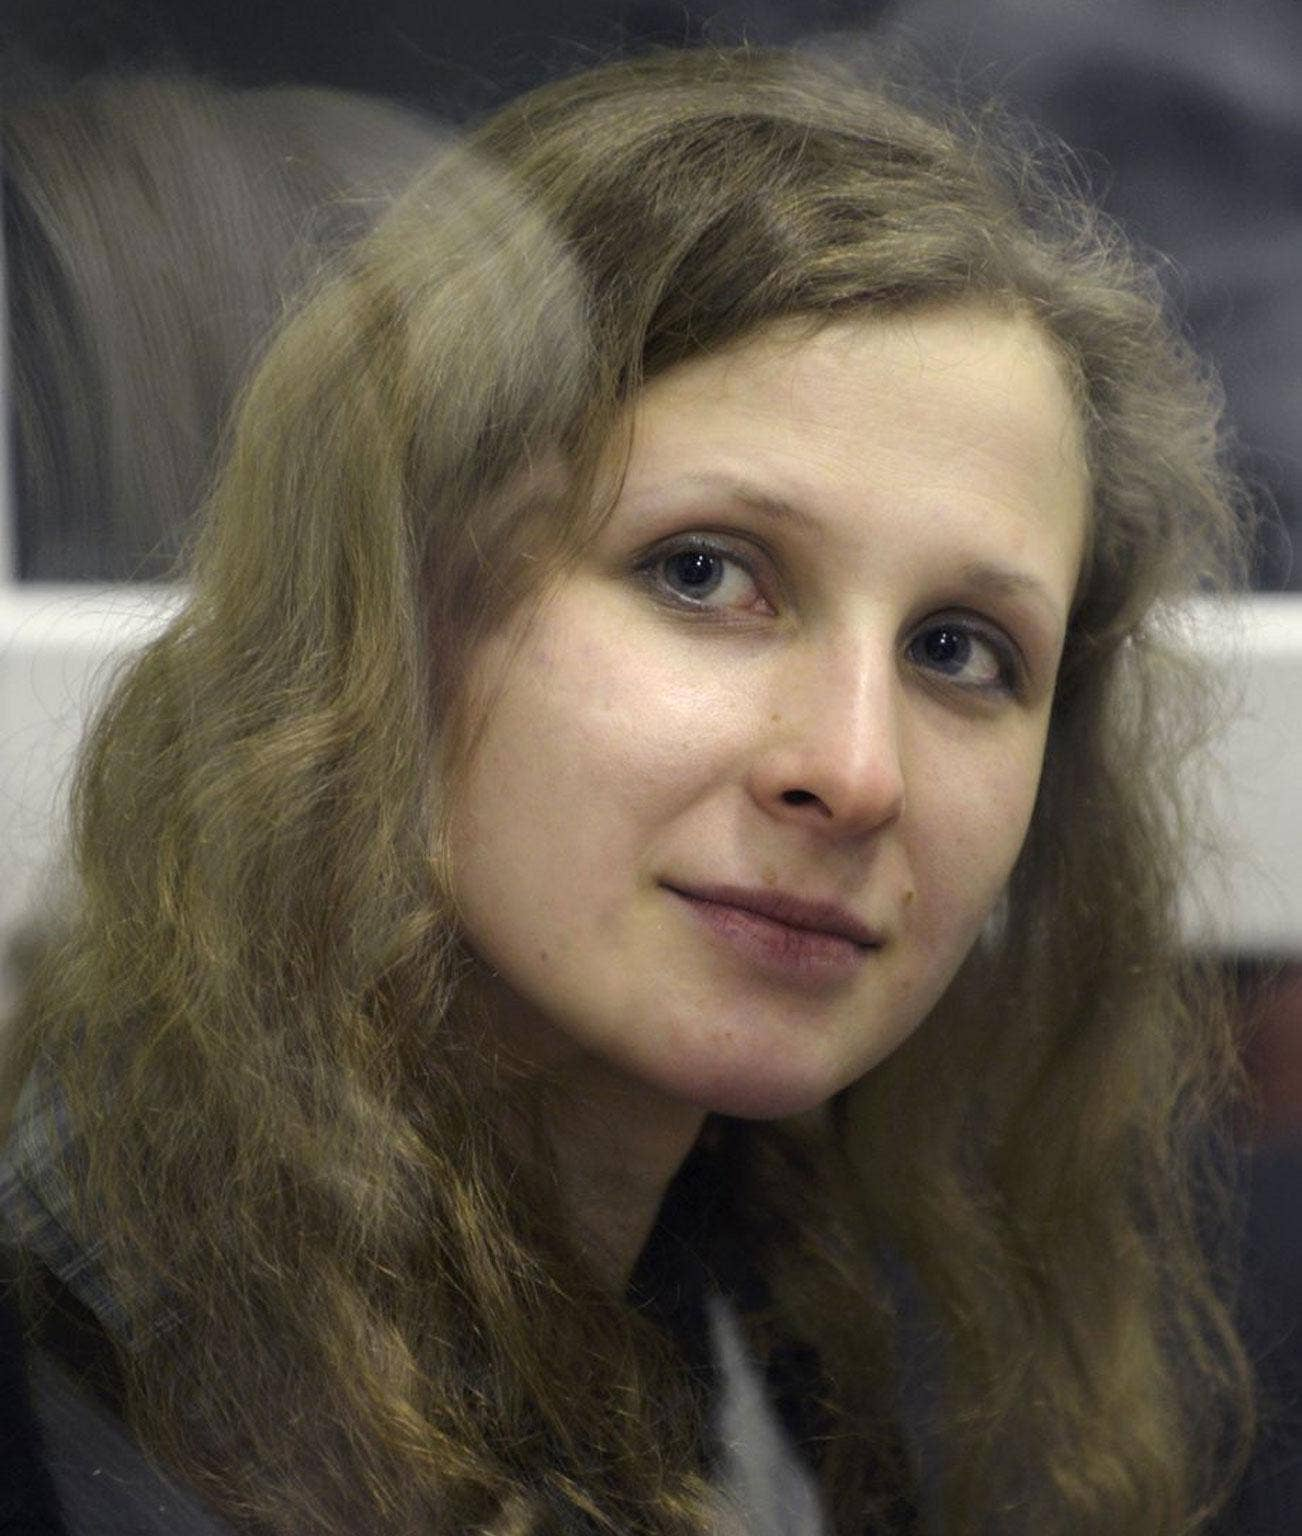 Maria Alekhina had complained that officials at her prison colony in the Ural Mountains attempted to turn fellow inmates against her with a security crackdown.